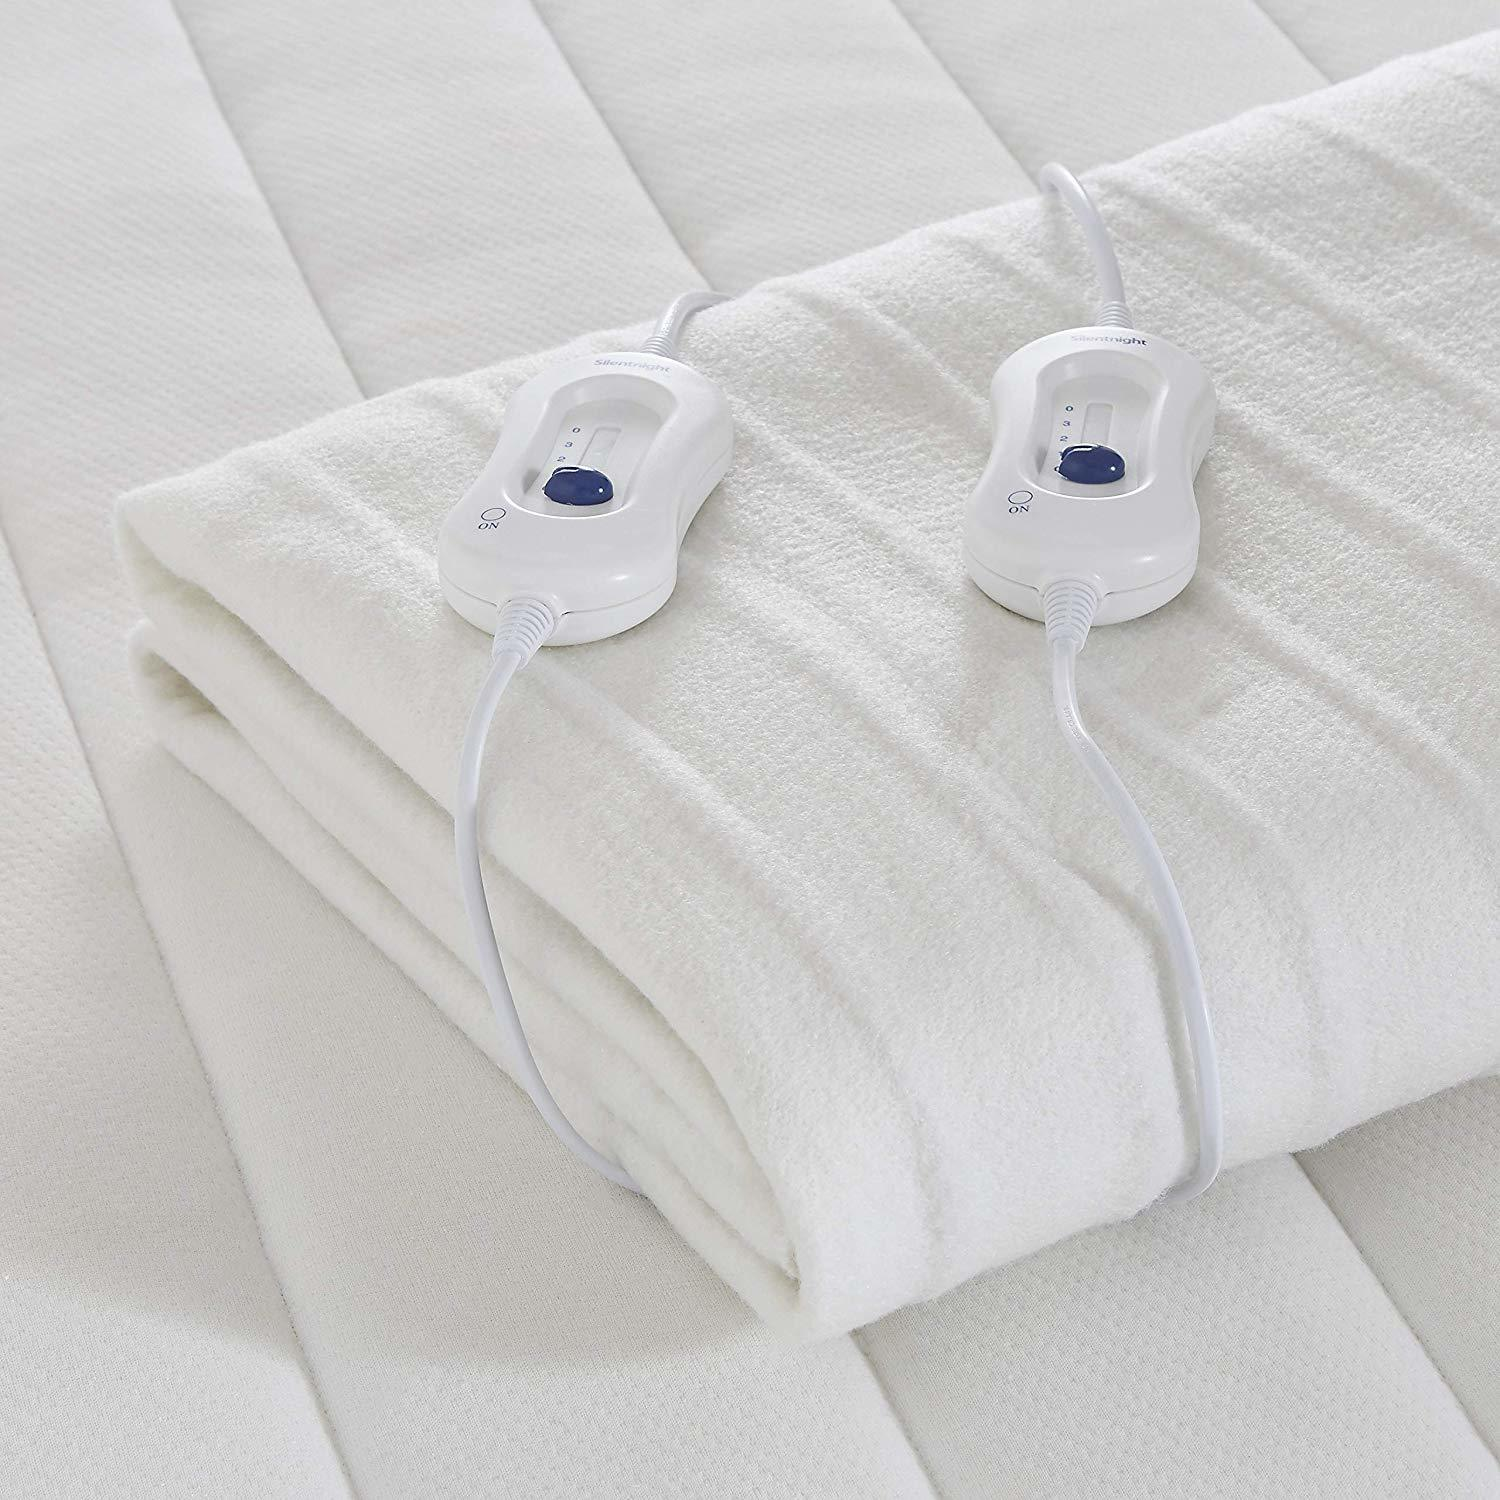 aa01f3c4ffe Silentnight Comfort Control Dual Control Electric Blanket from ...